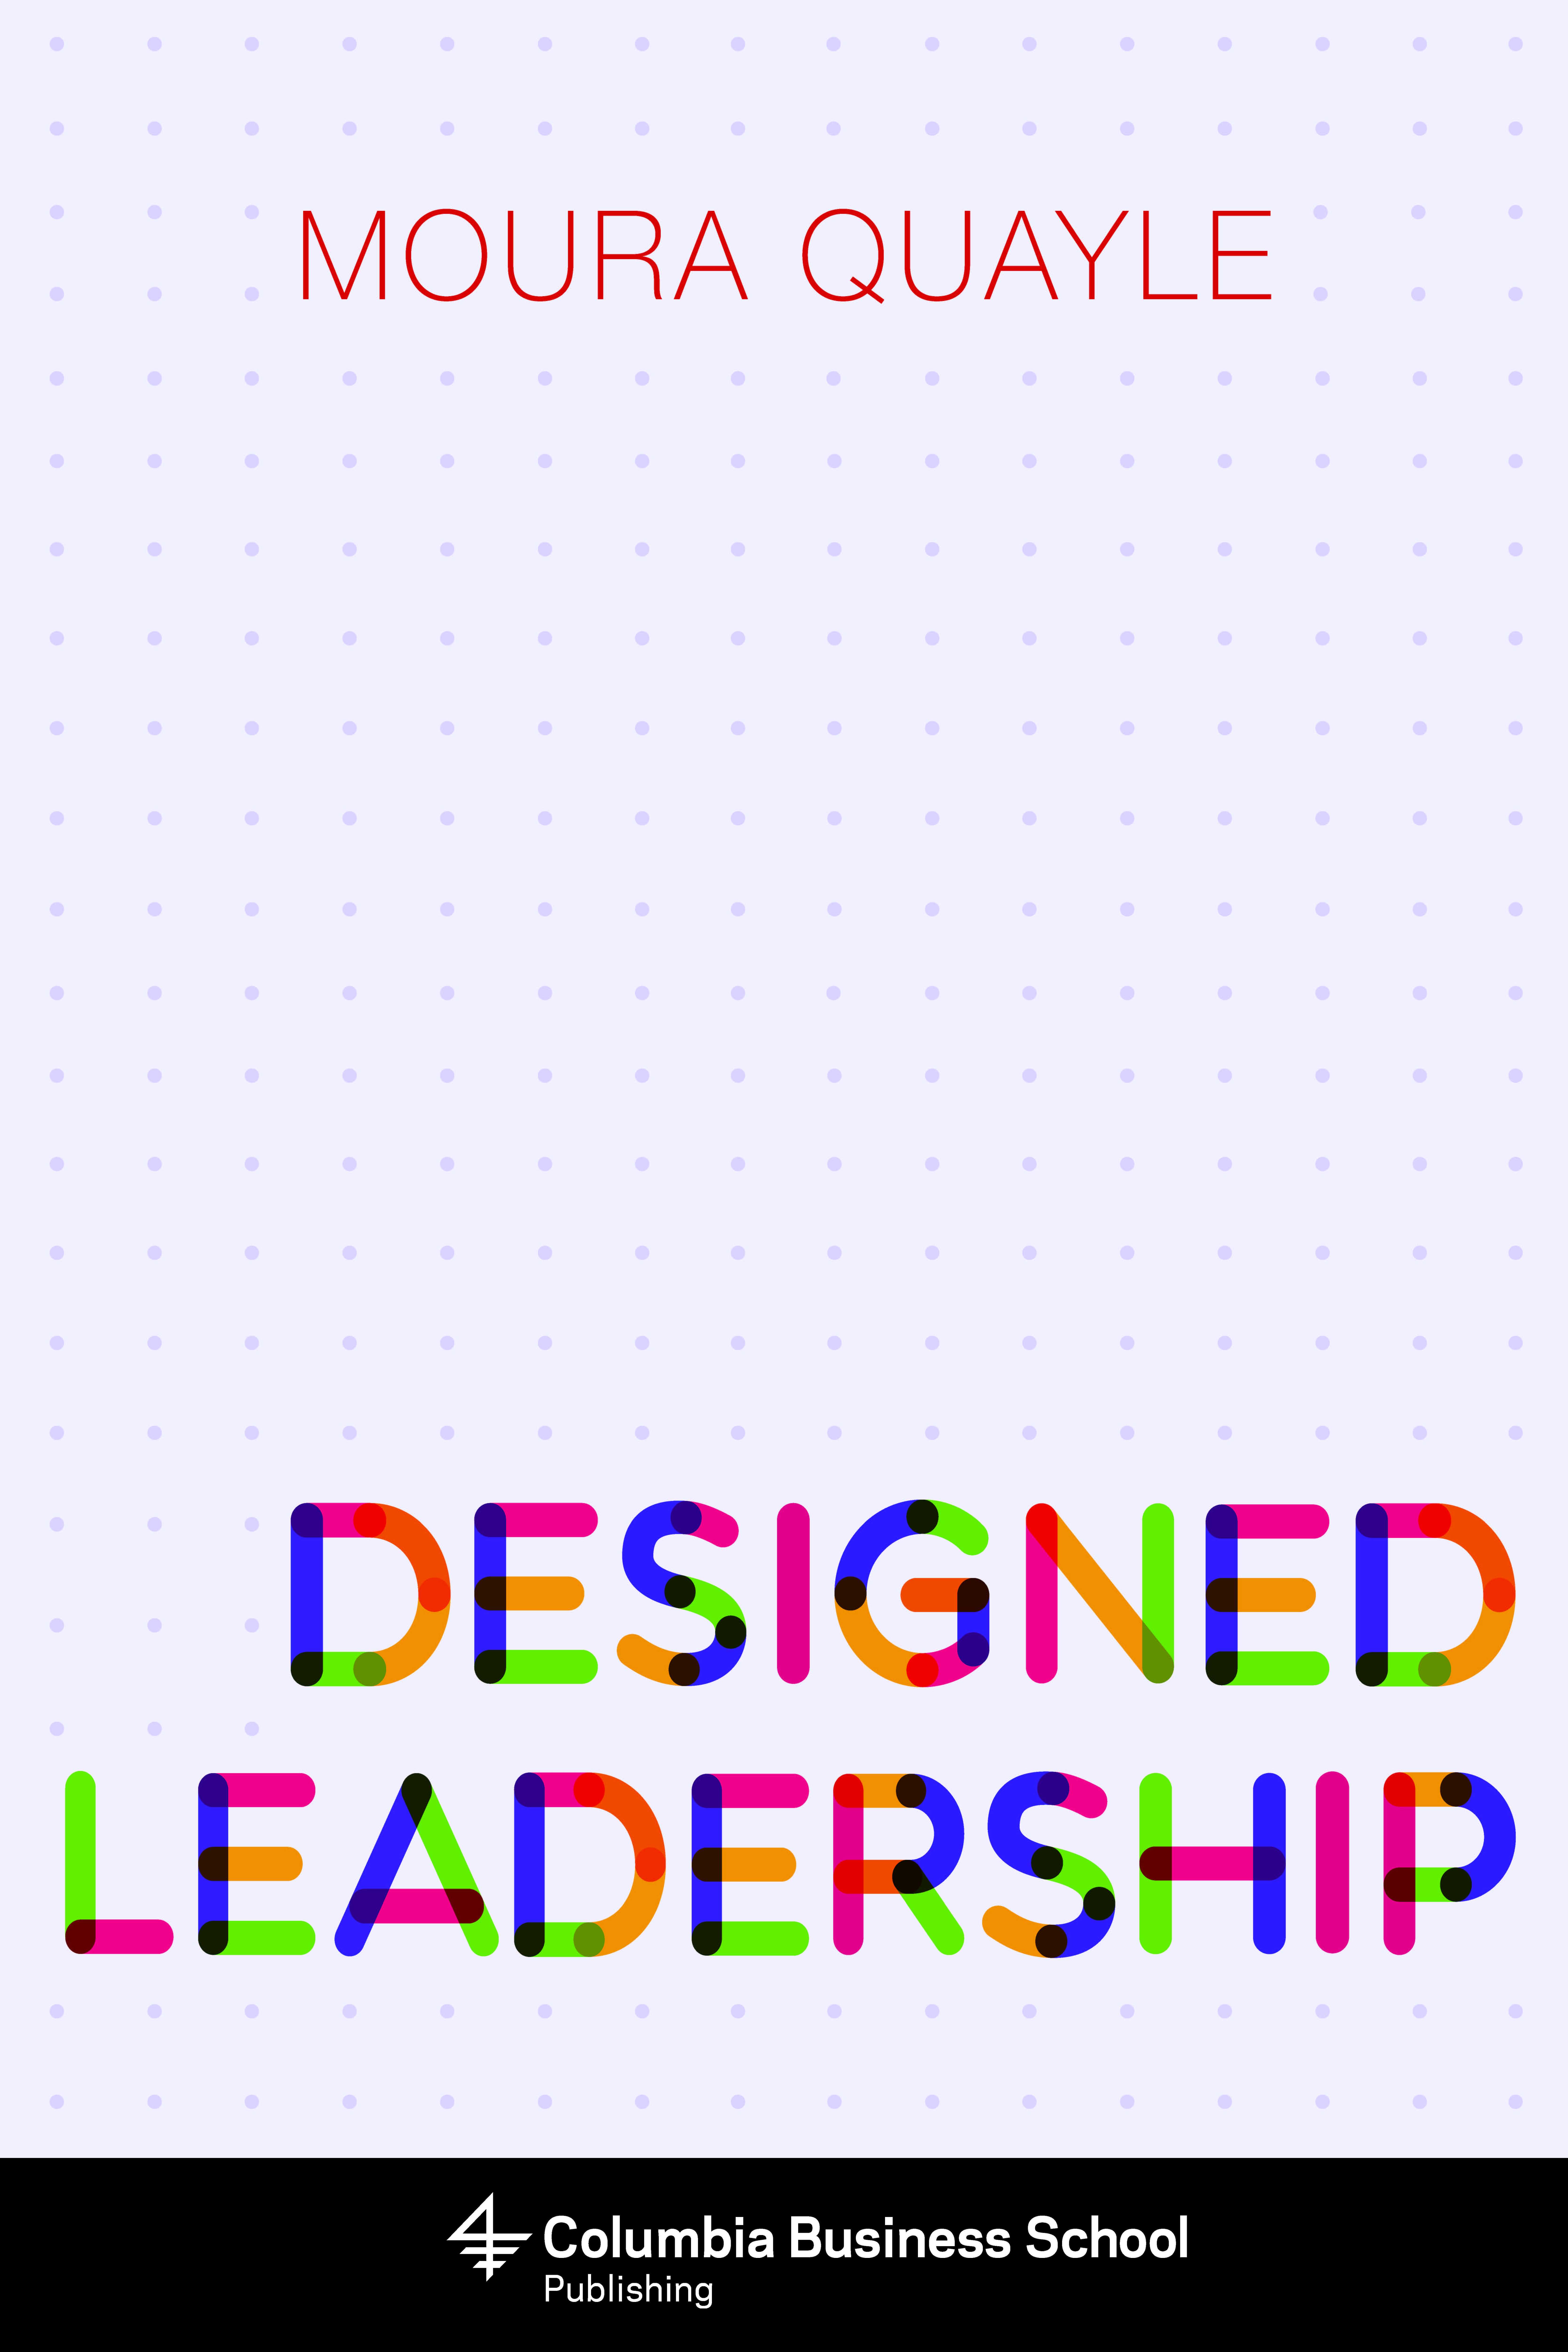 Designed_Leadership_4 FINAL.jpg